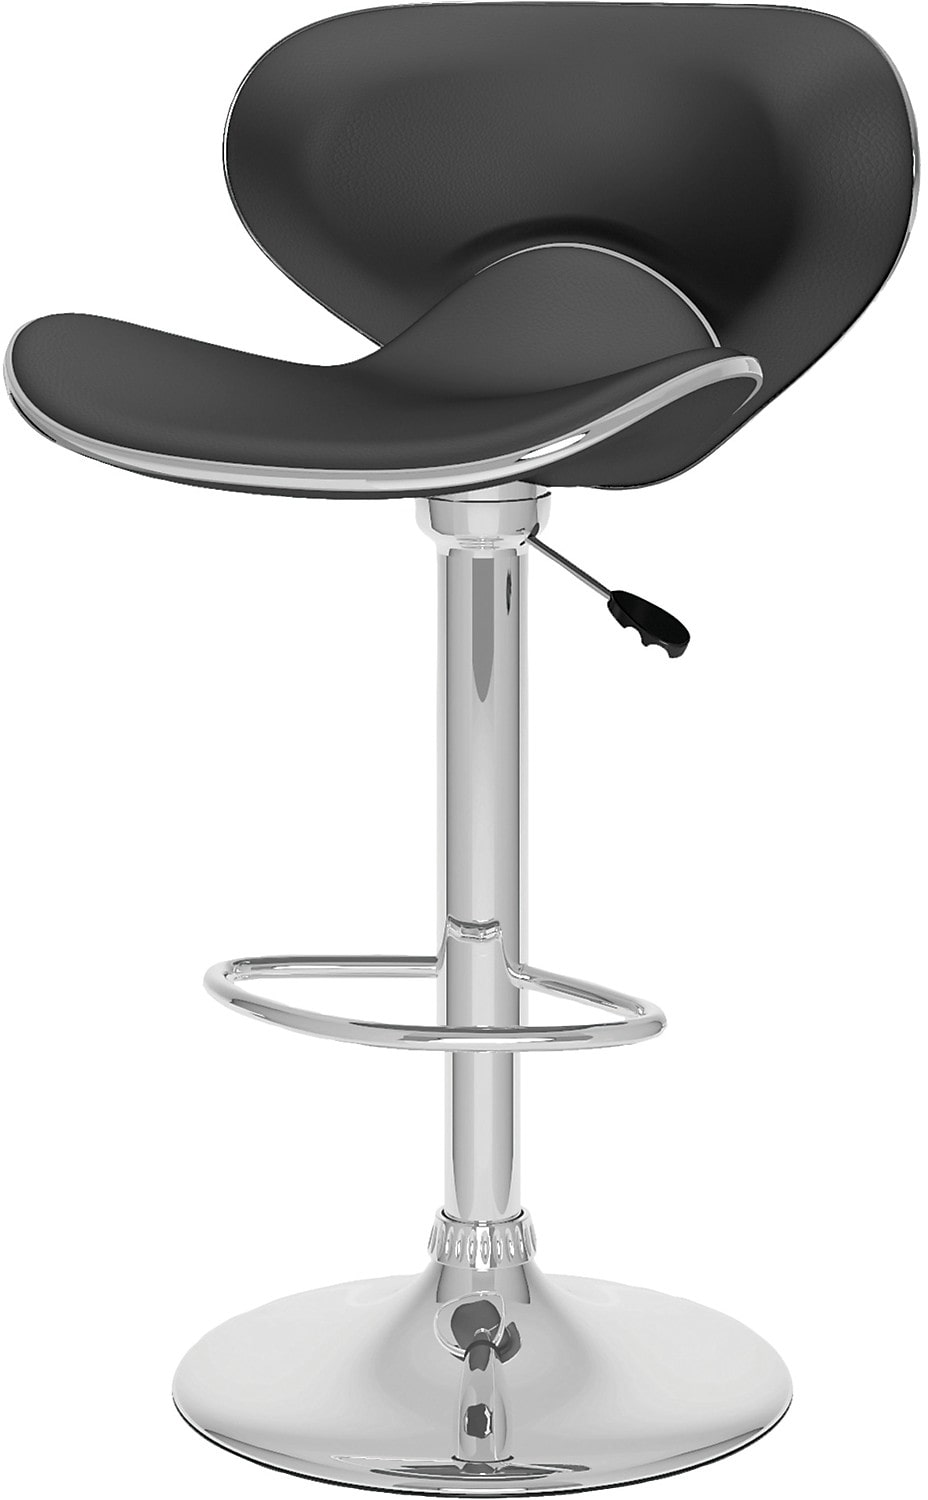 CorLiving Curved Form-Fitting Adjustable Bar Stool - Black